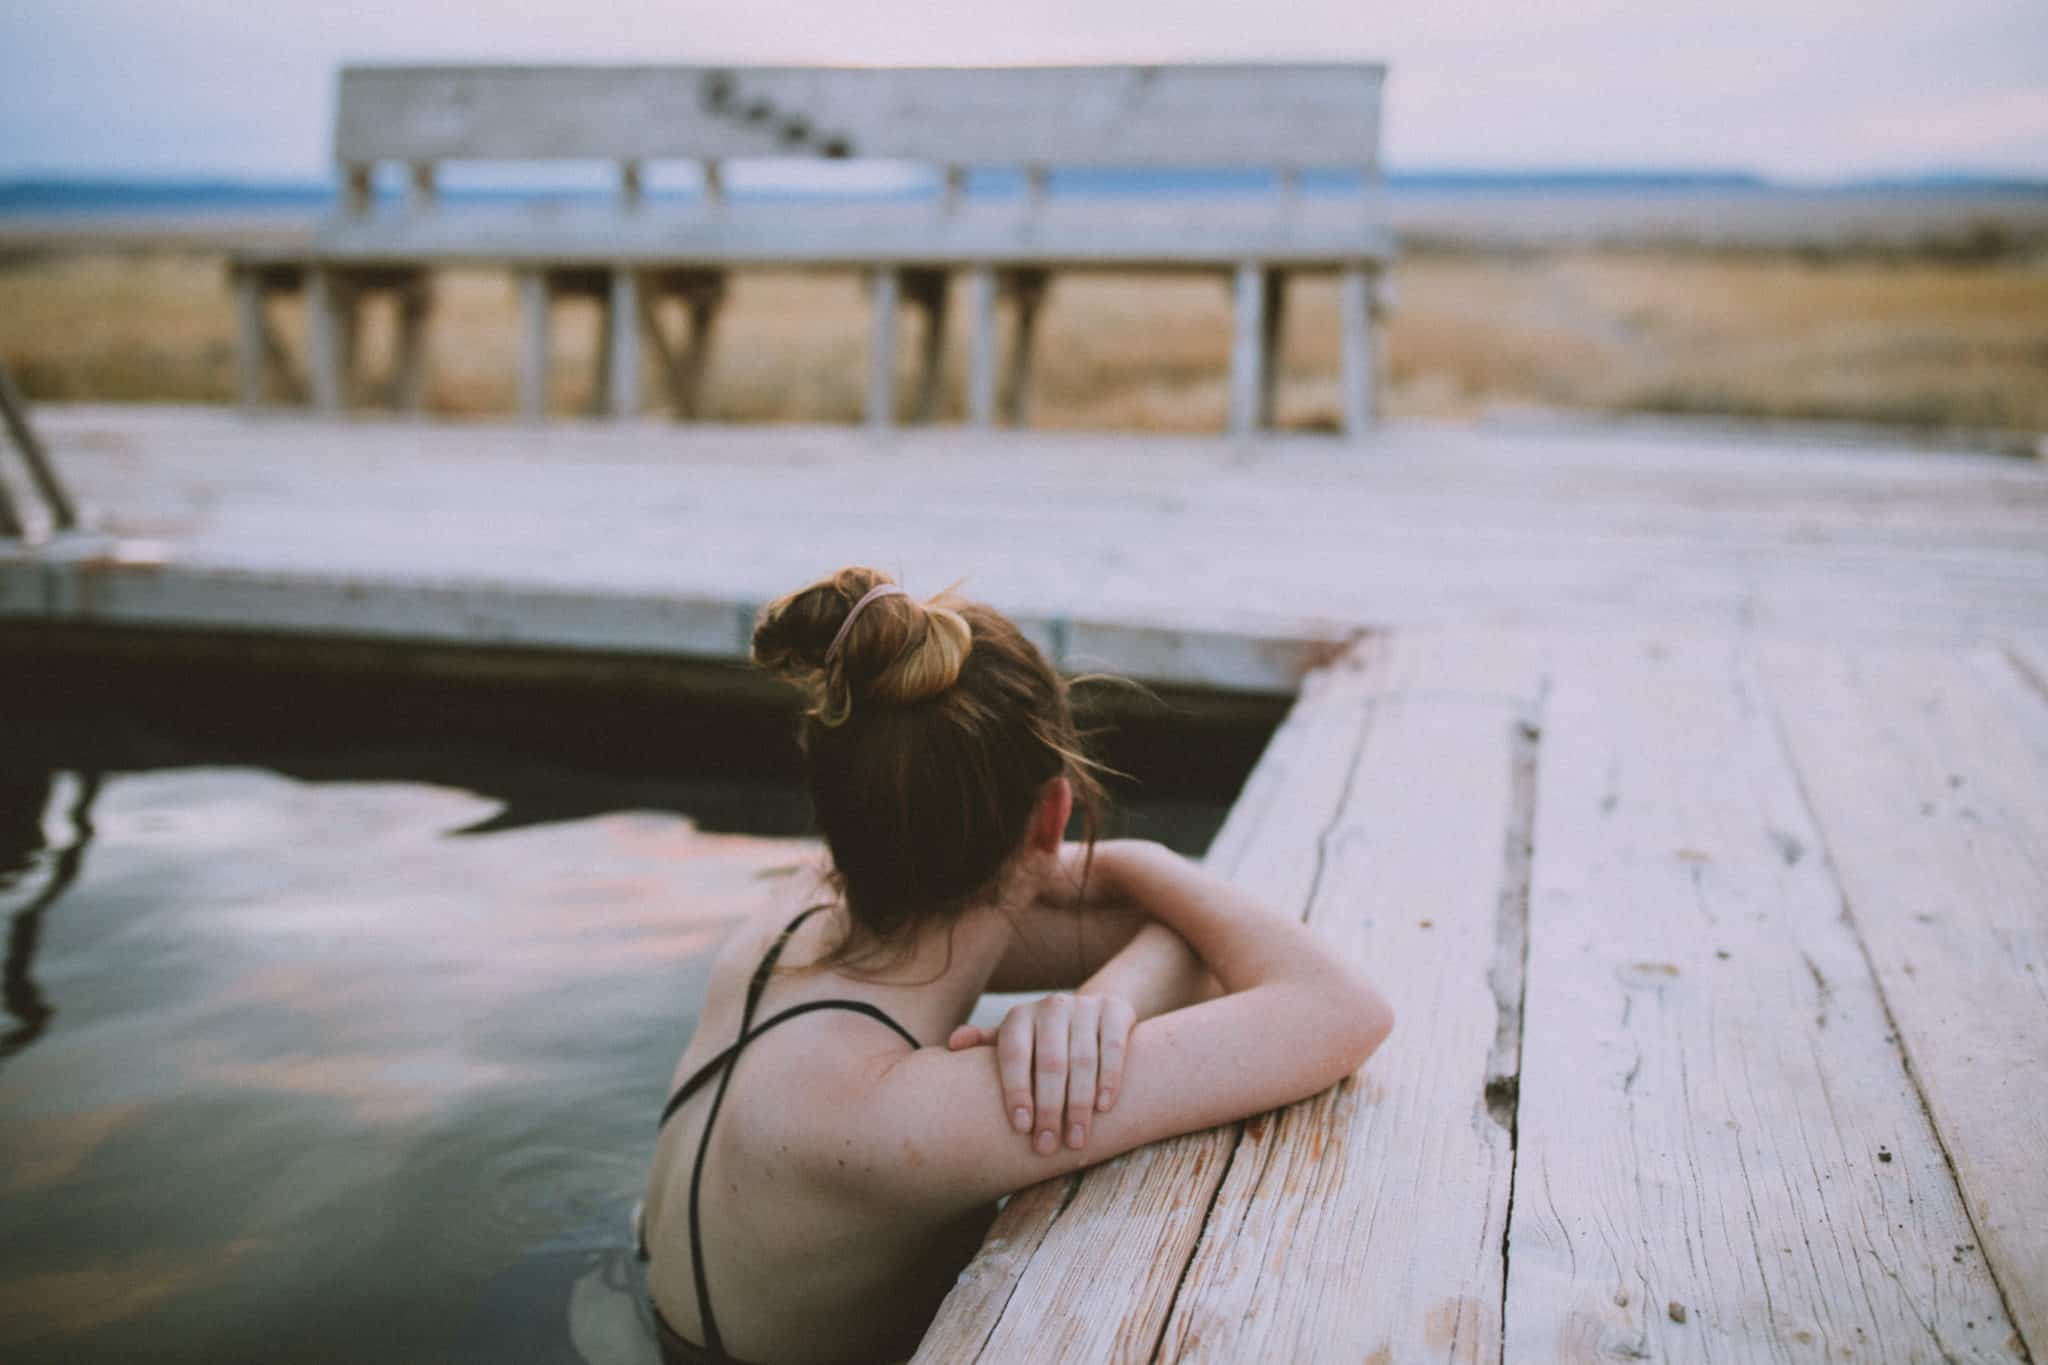 Emily at Alvord Hot Springs - Travel Photography Tips